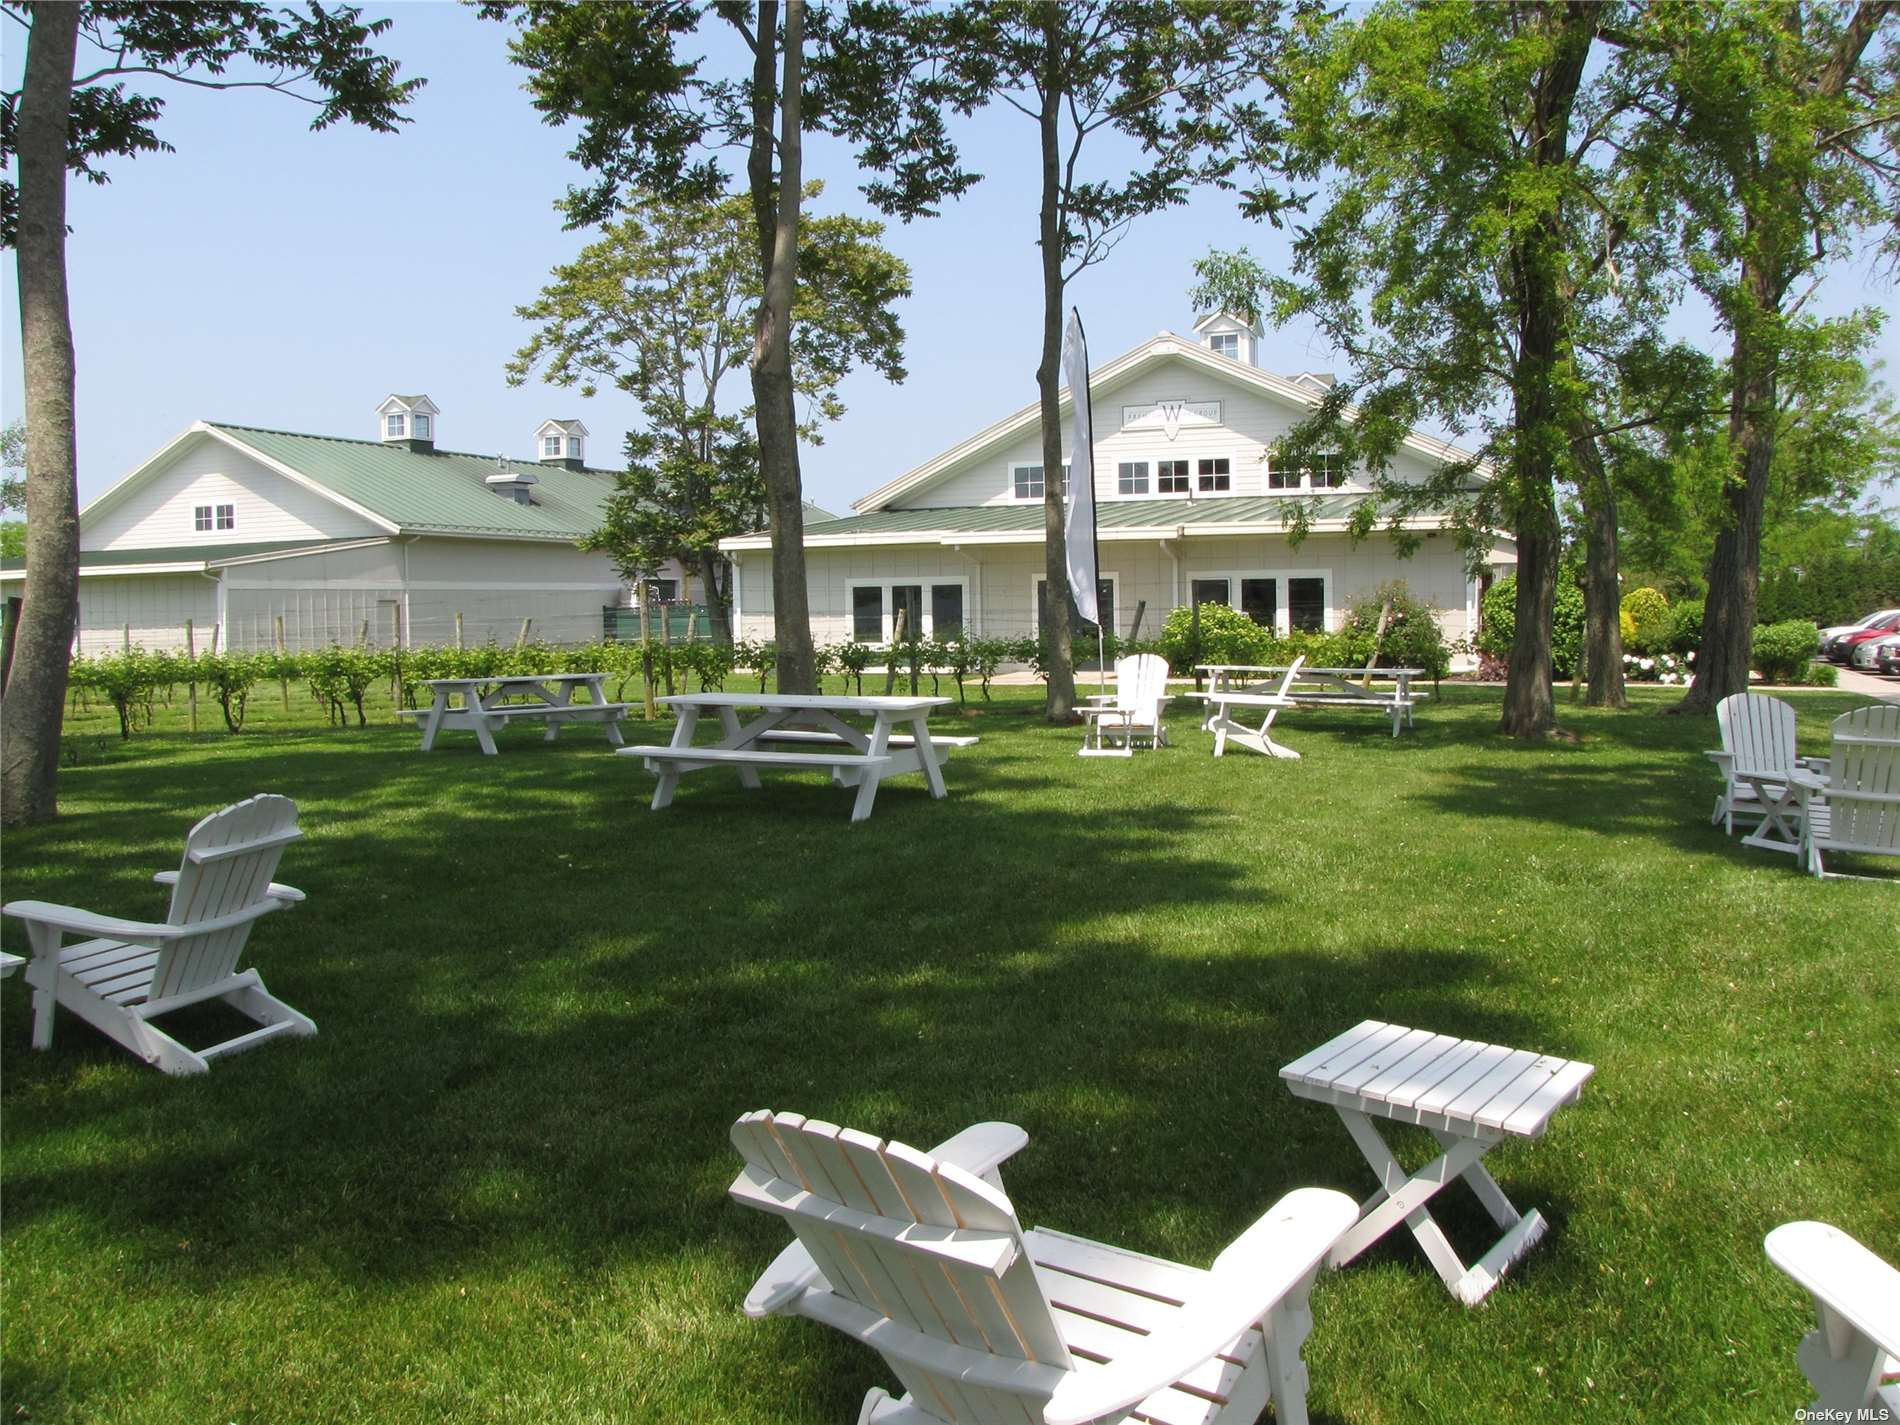 Pbev Is A Contract Wine Making Facility. With Several Businesses Attached Including Multiple Tasting Rooms And A Homestead.